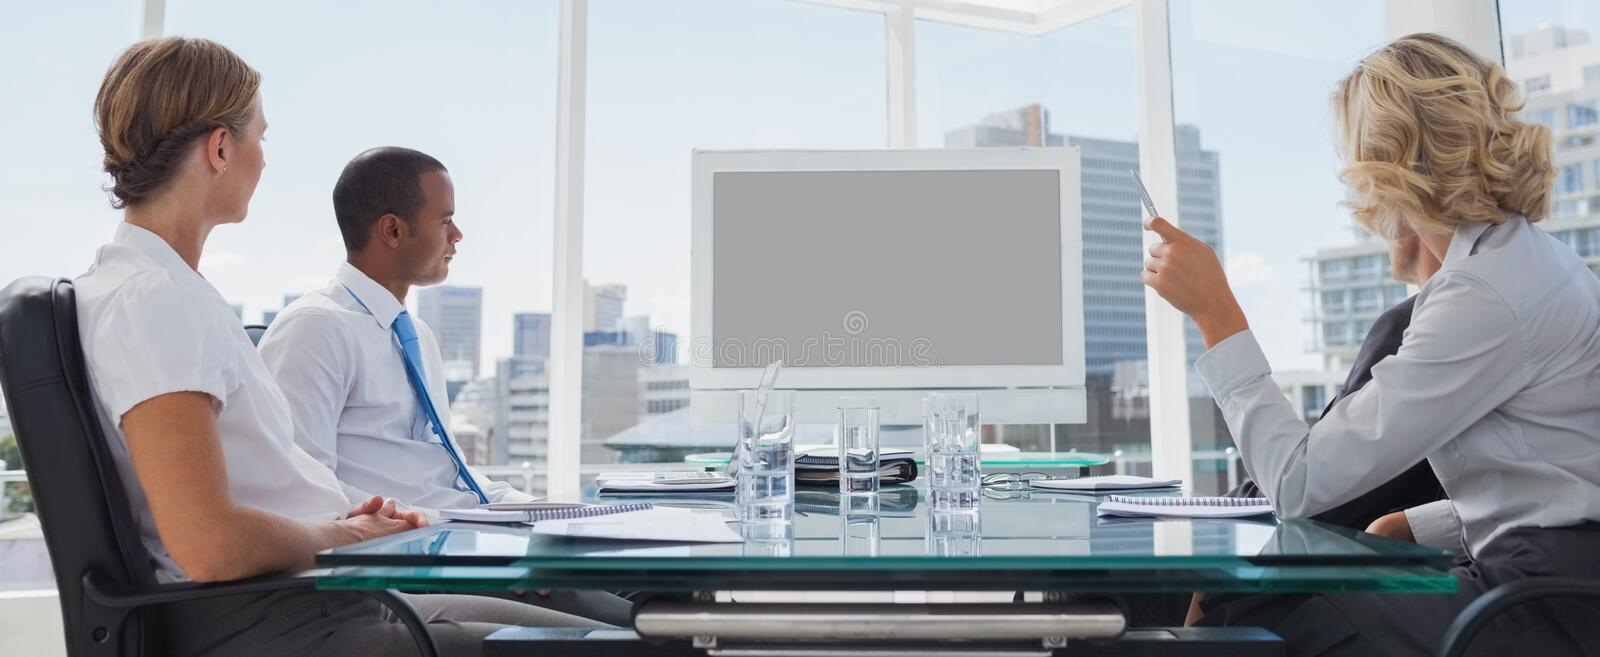 Business people gathered during a video conference royalty free stock photography